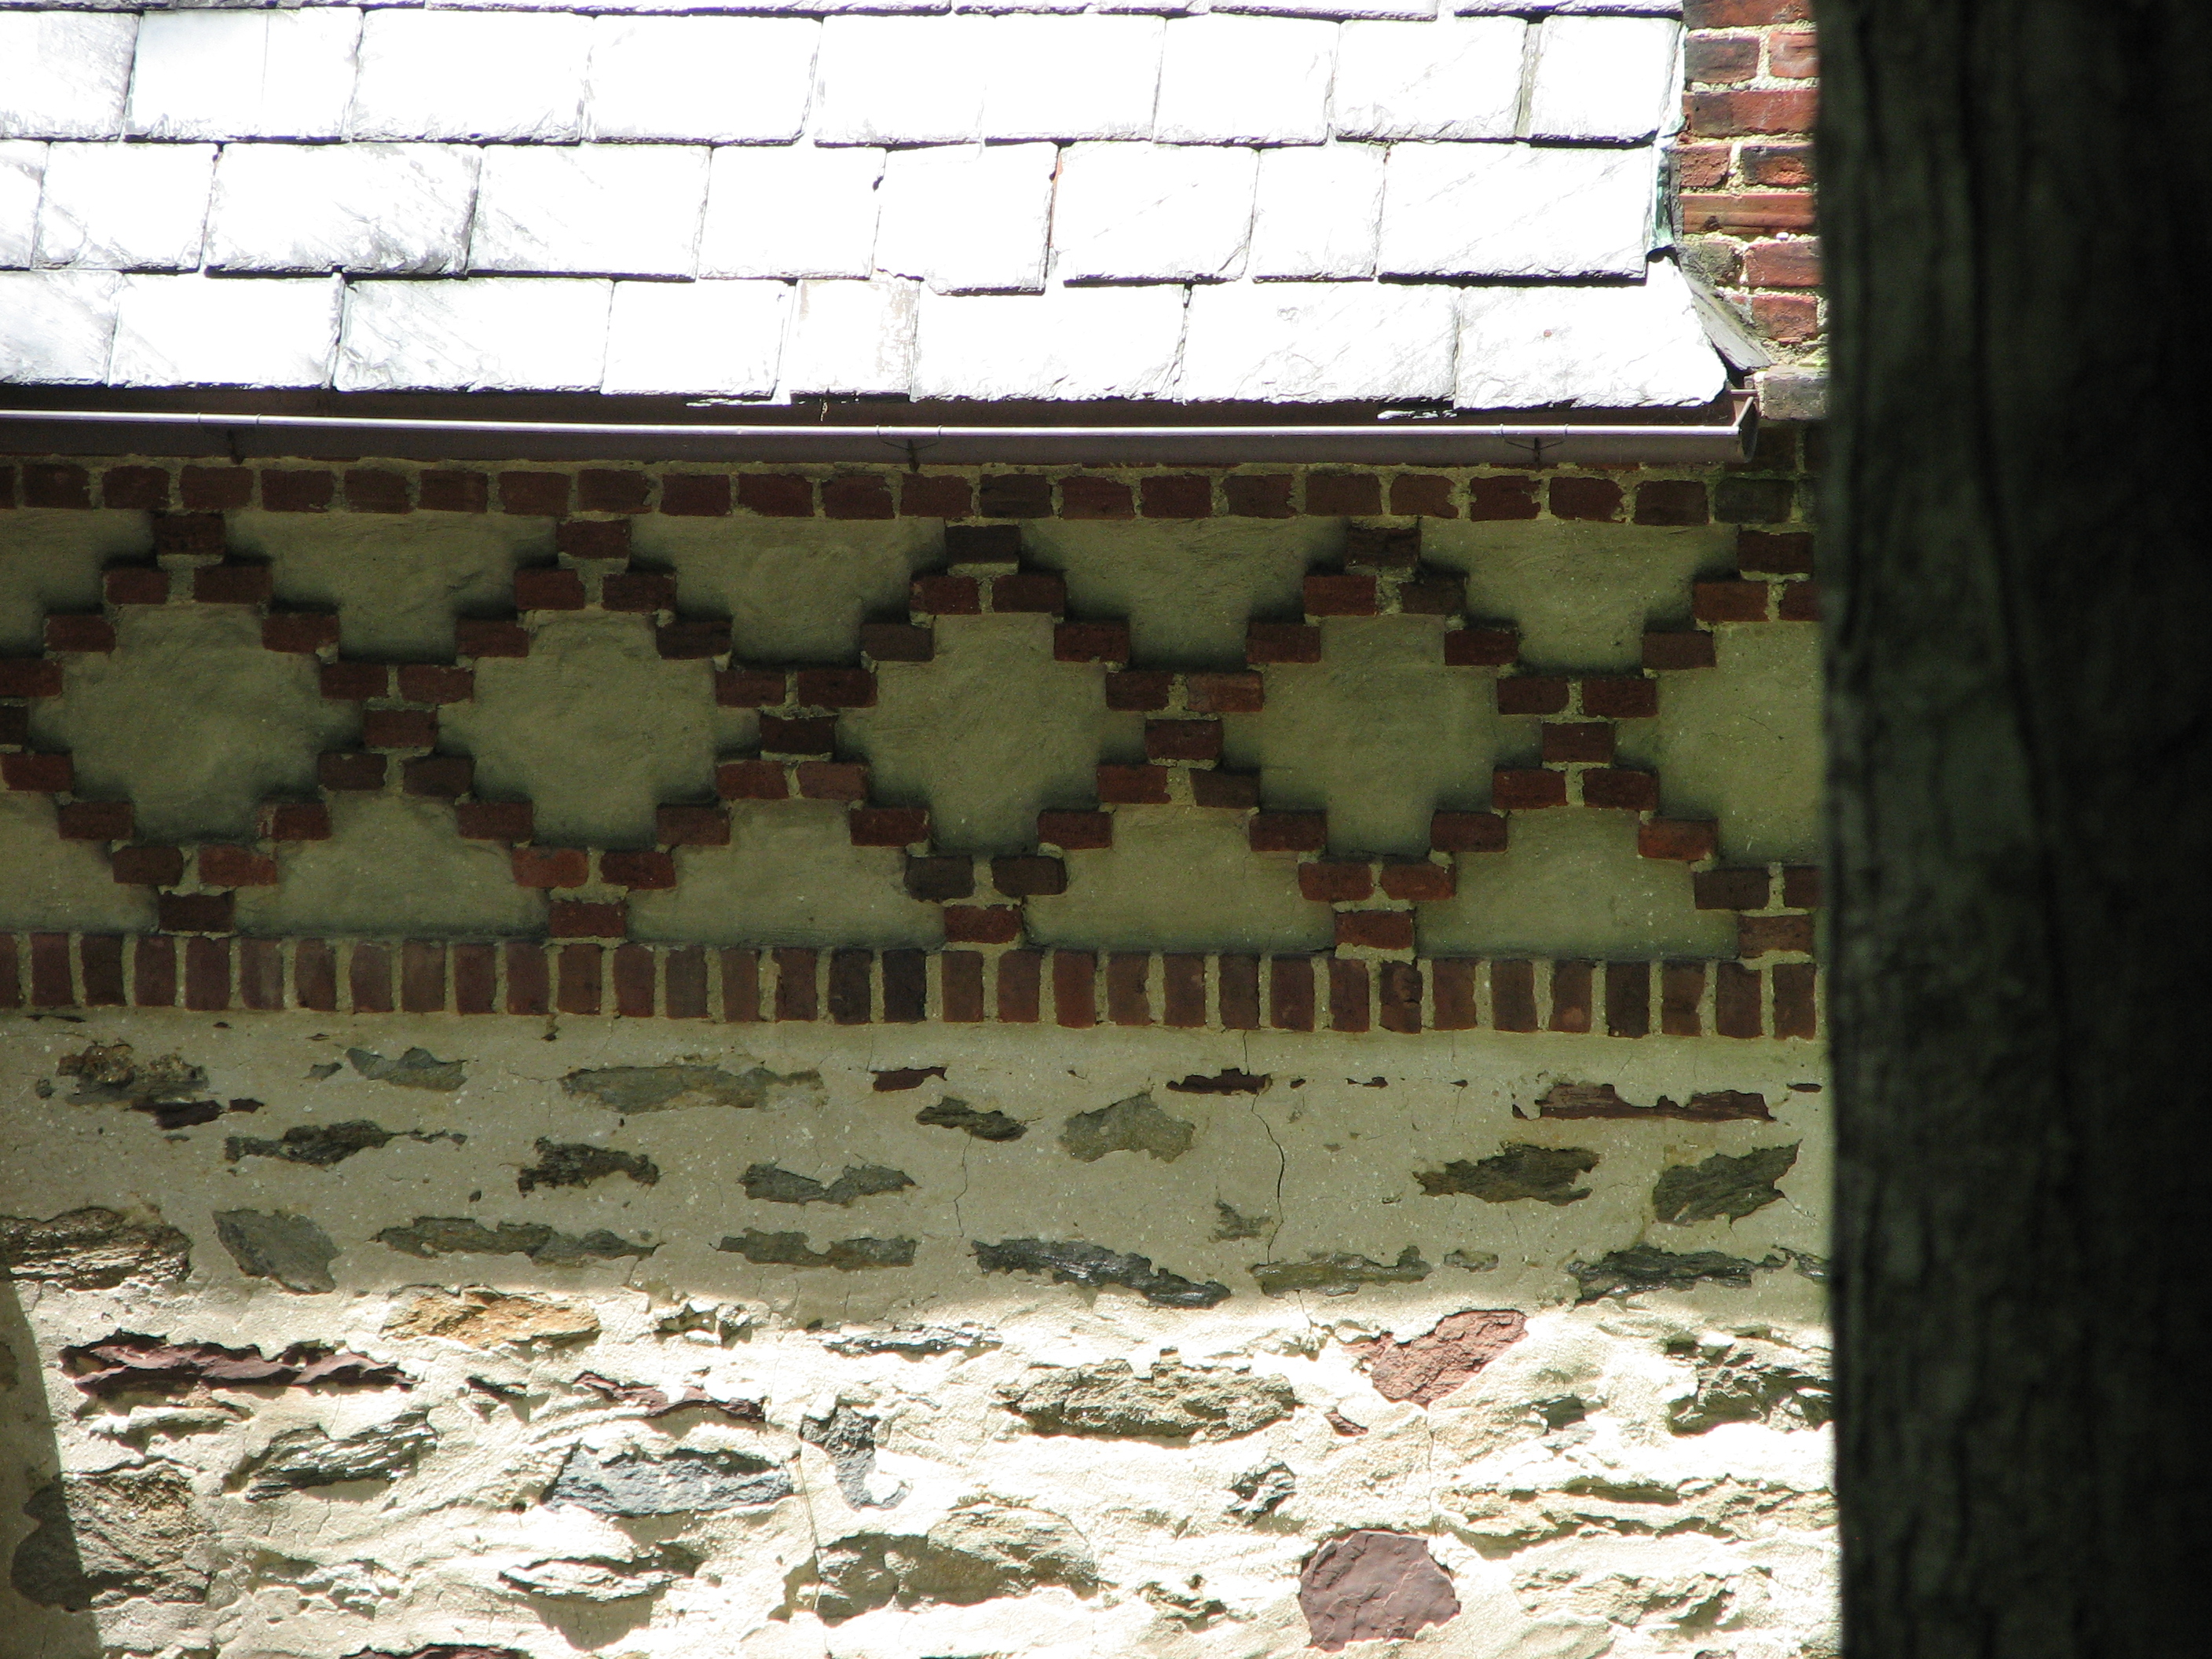 Elaborate brick designs adorn the carriage houses.